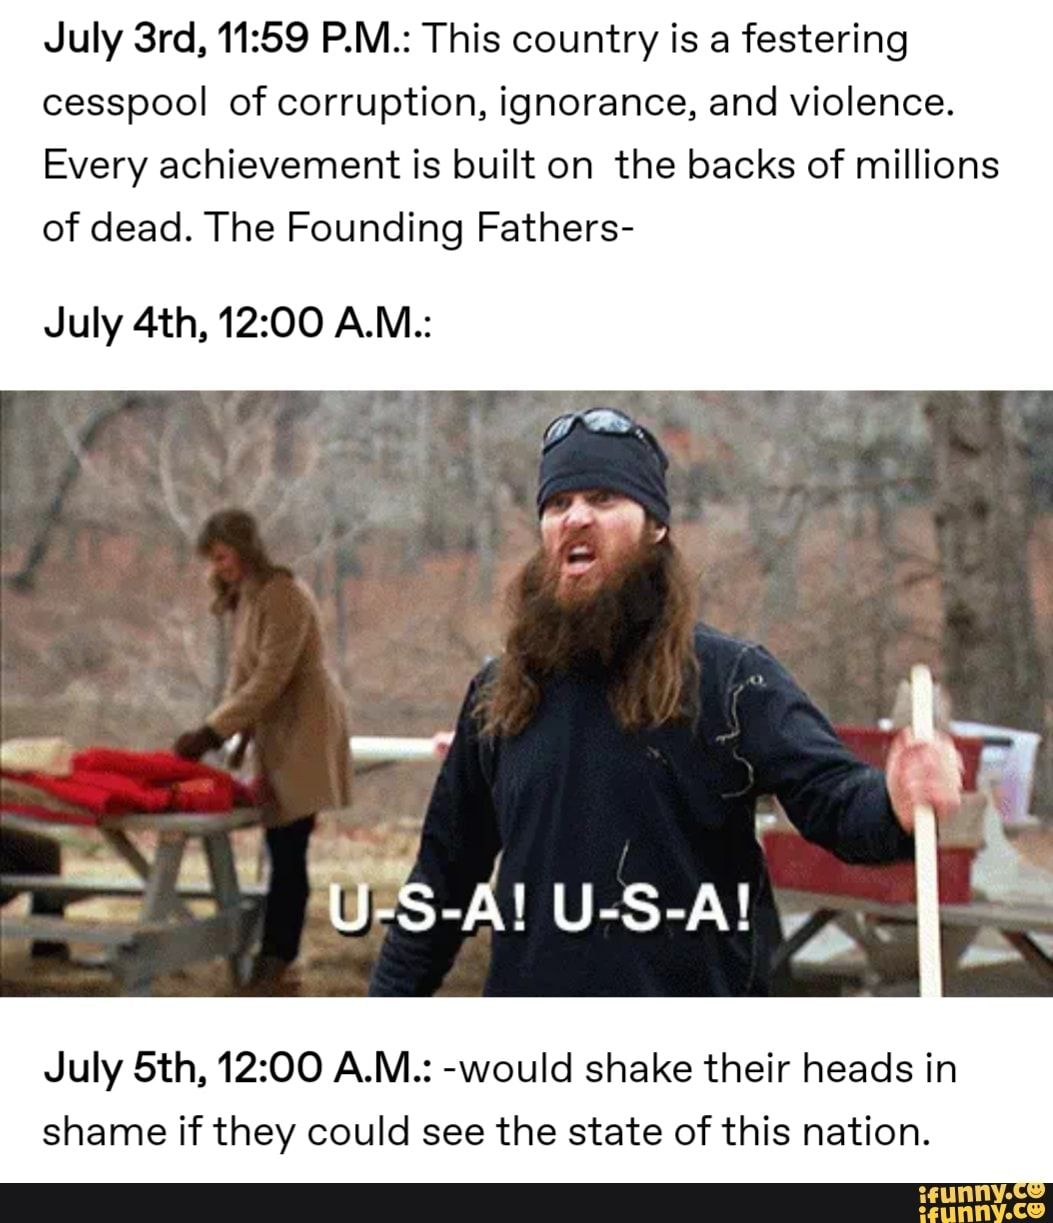 July 3rd,11:59 PM.: This country is a festering cesspool of corruption, ignorance, and violence. Every achievement is built on the backs of millions of dead. The Founding Fathers- July 4th, 12:00 A.M.: July 5th,12:00 A.M.: -wouId shake their heads in shame if they could see the state of this nation. –... #seasons #animalsnature #july #pm #this #country #festering #cesspool #ignorance #every #achievement #built #backs #millions #the #founding #fathers #wouid #shake #heads #shame #could #pic